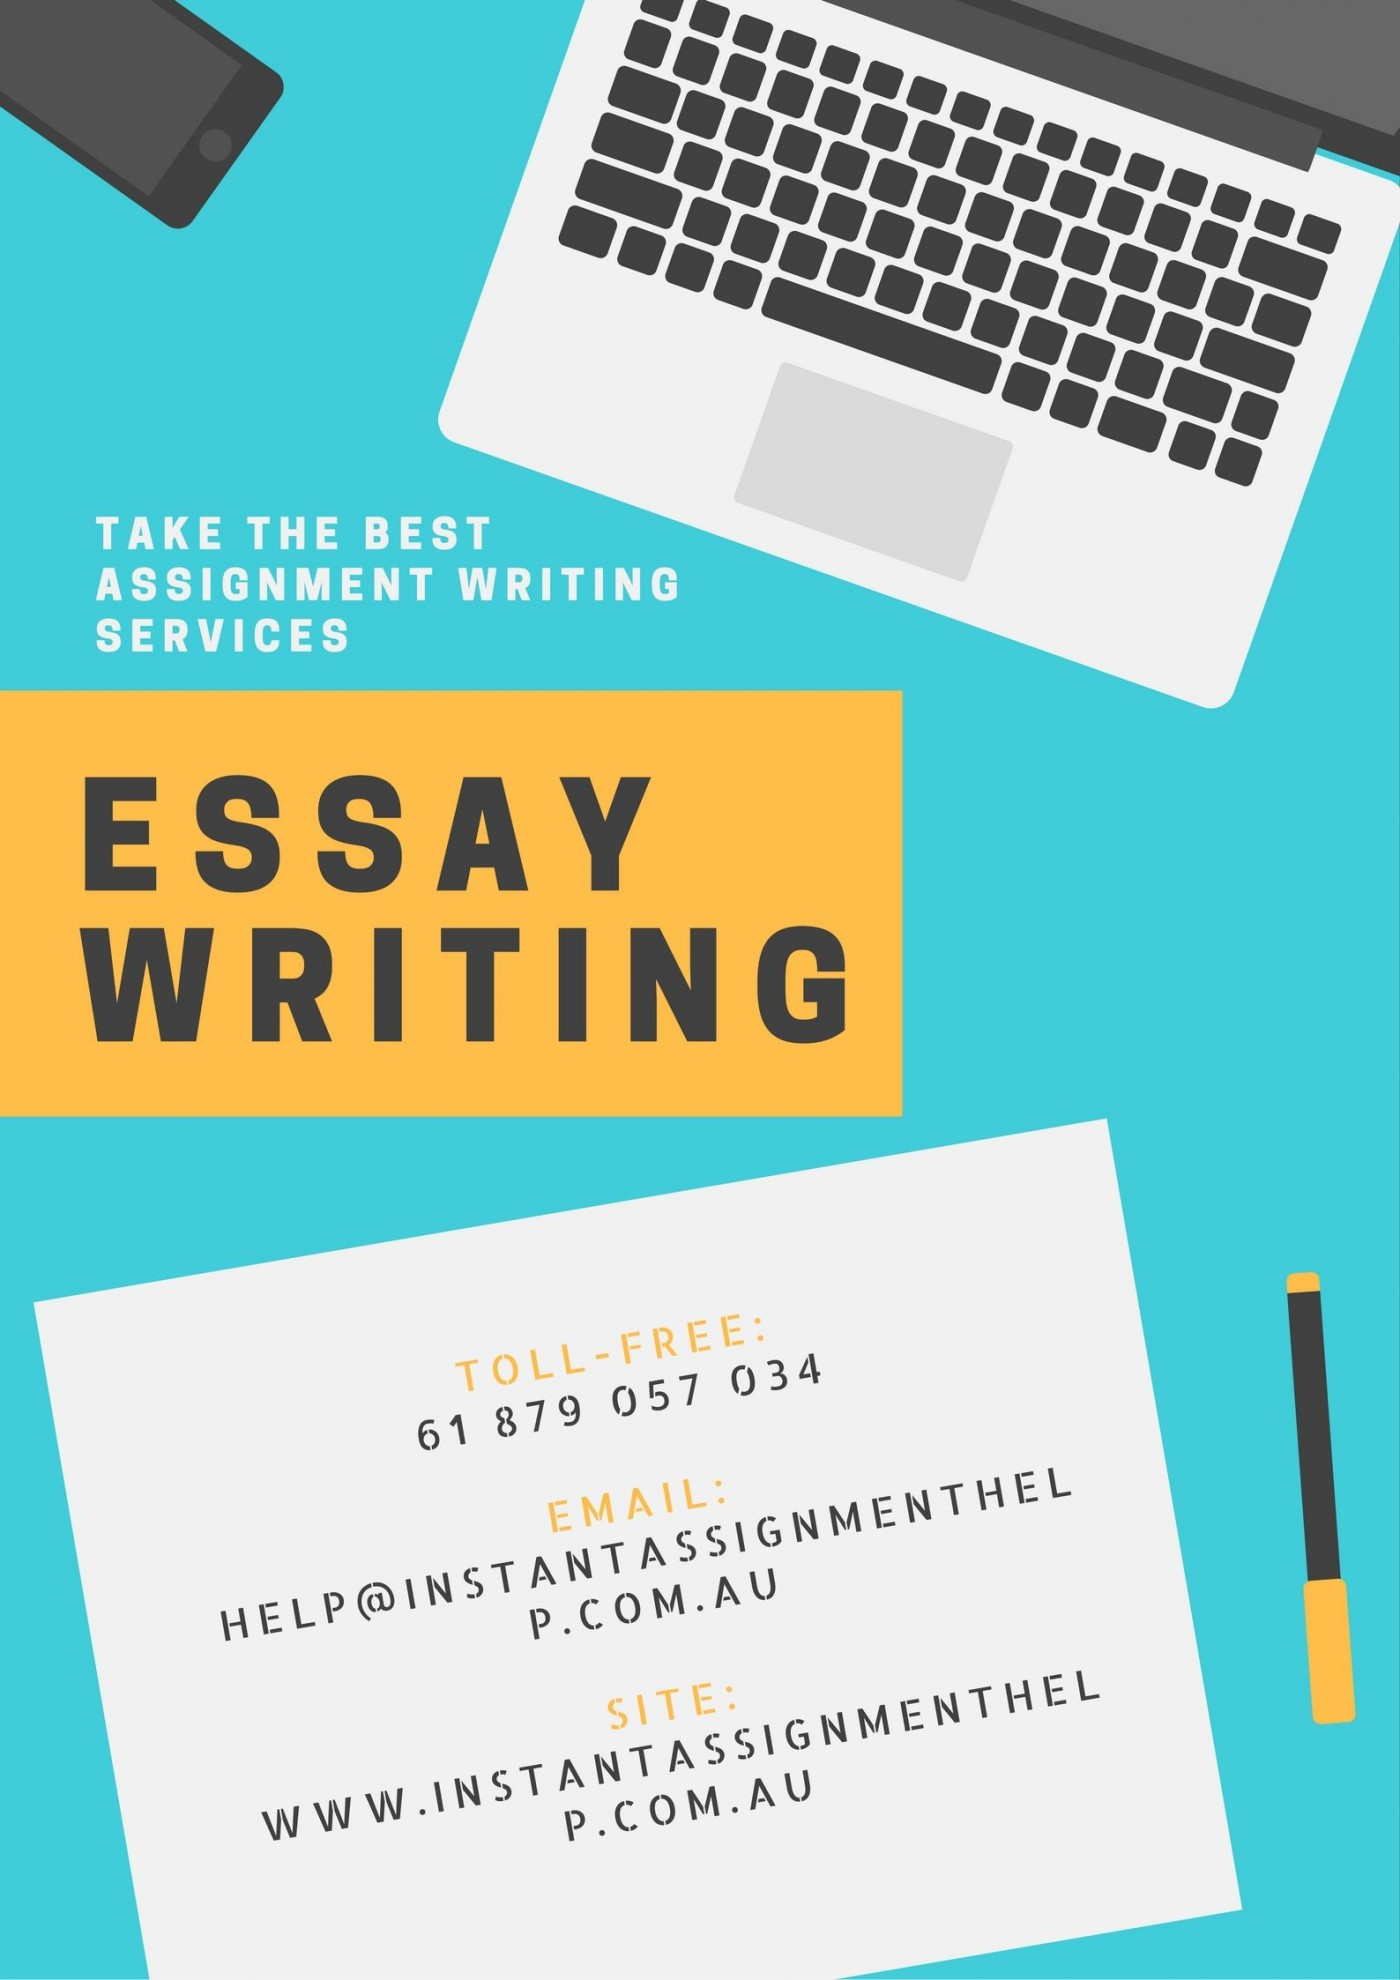 004 Essay Writing Help Example Frightening Scholarships For High School Students Cheap Service Australia Middle 1400